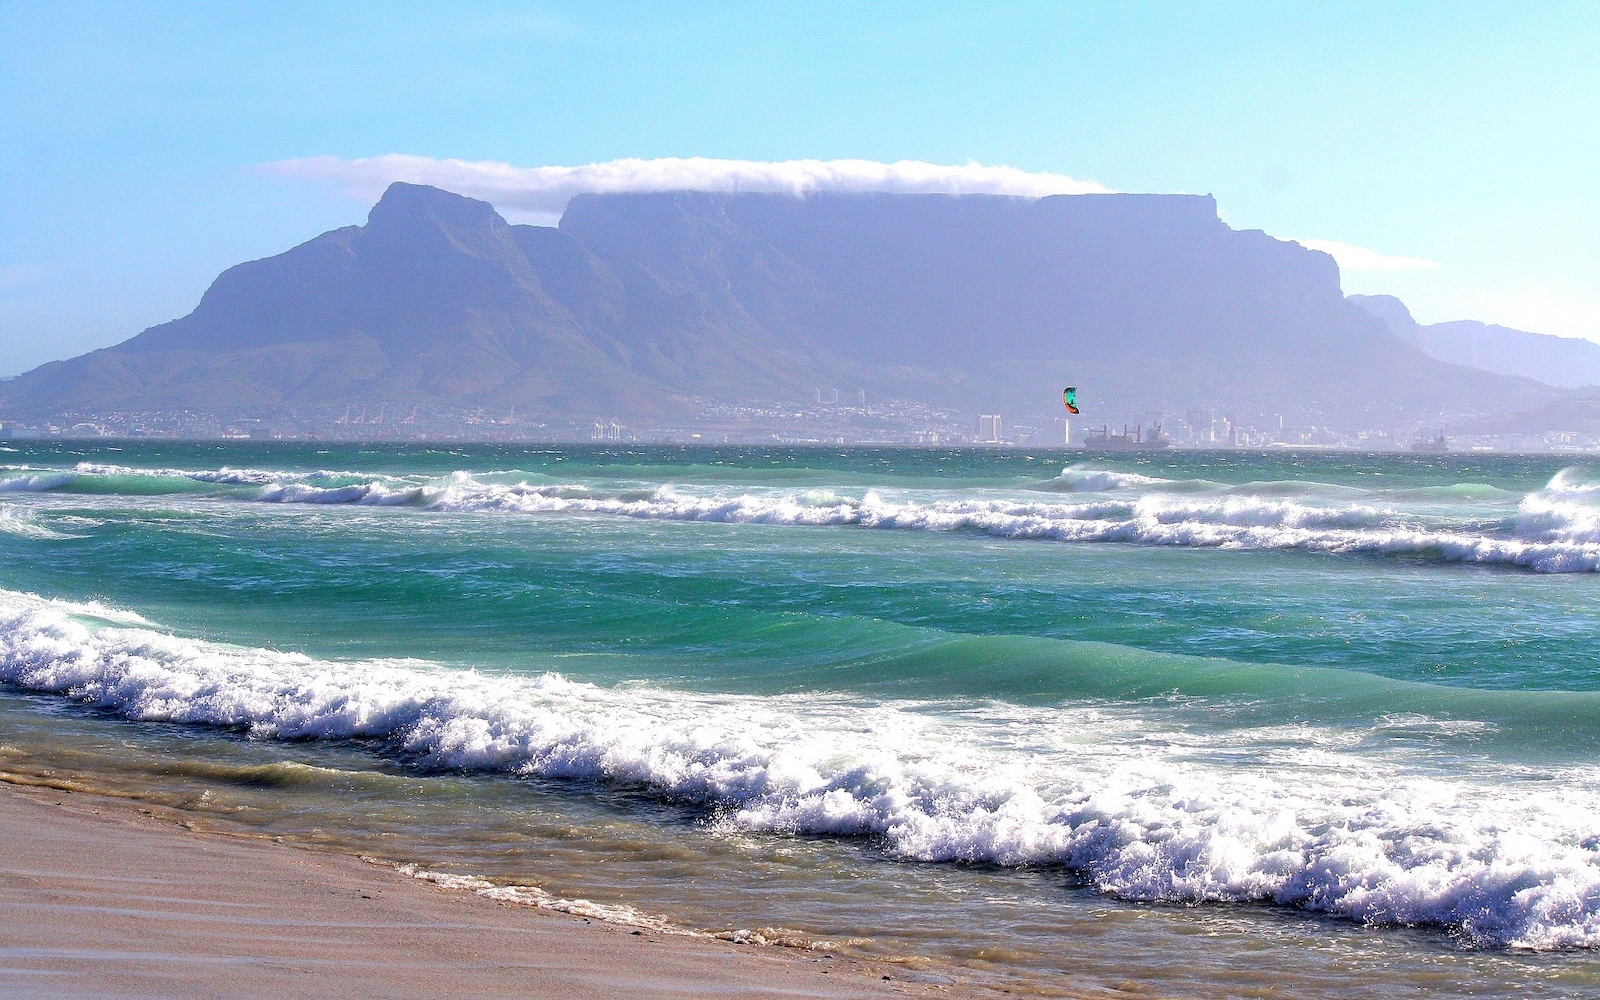 South Africa, Safari and Coastline